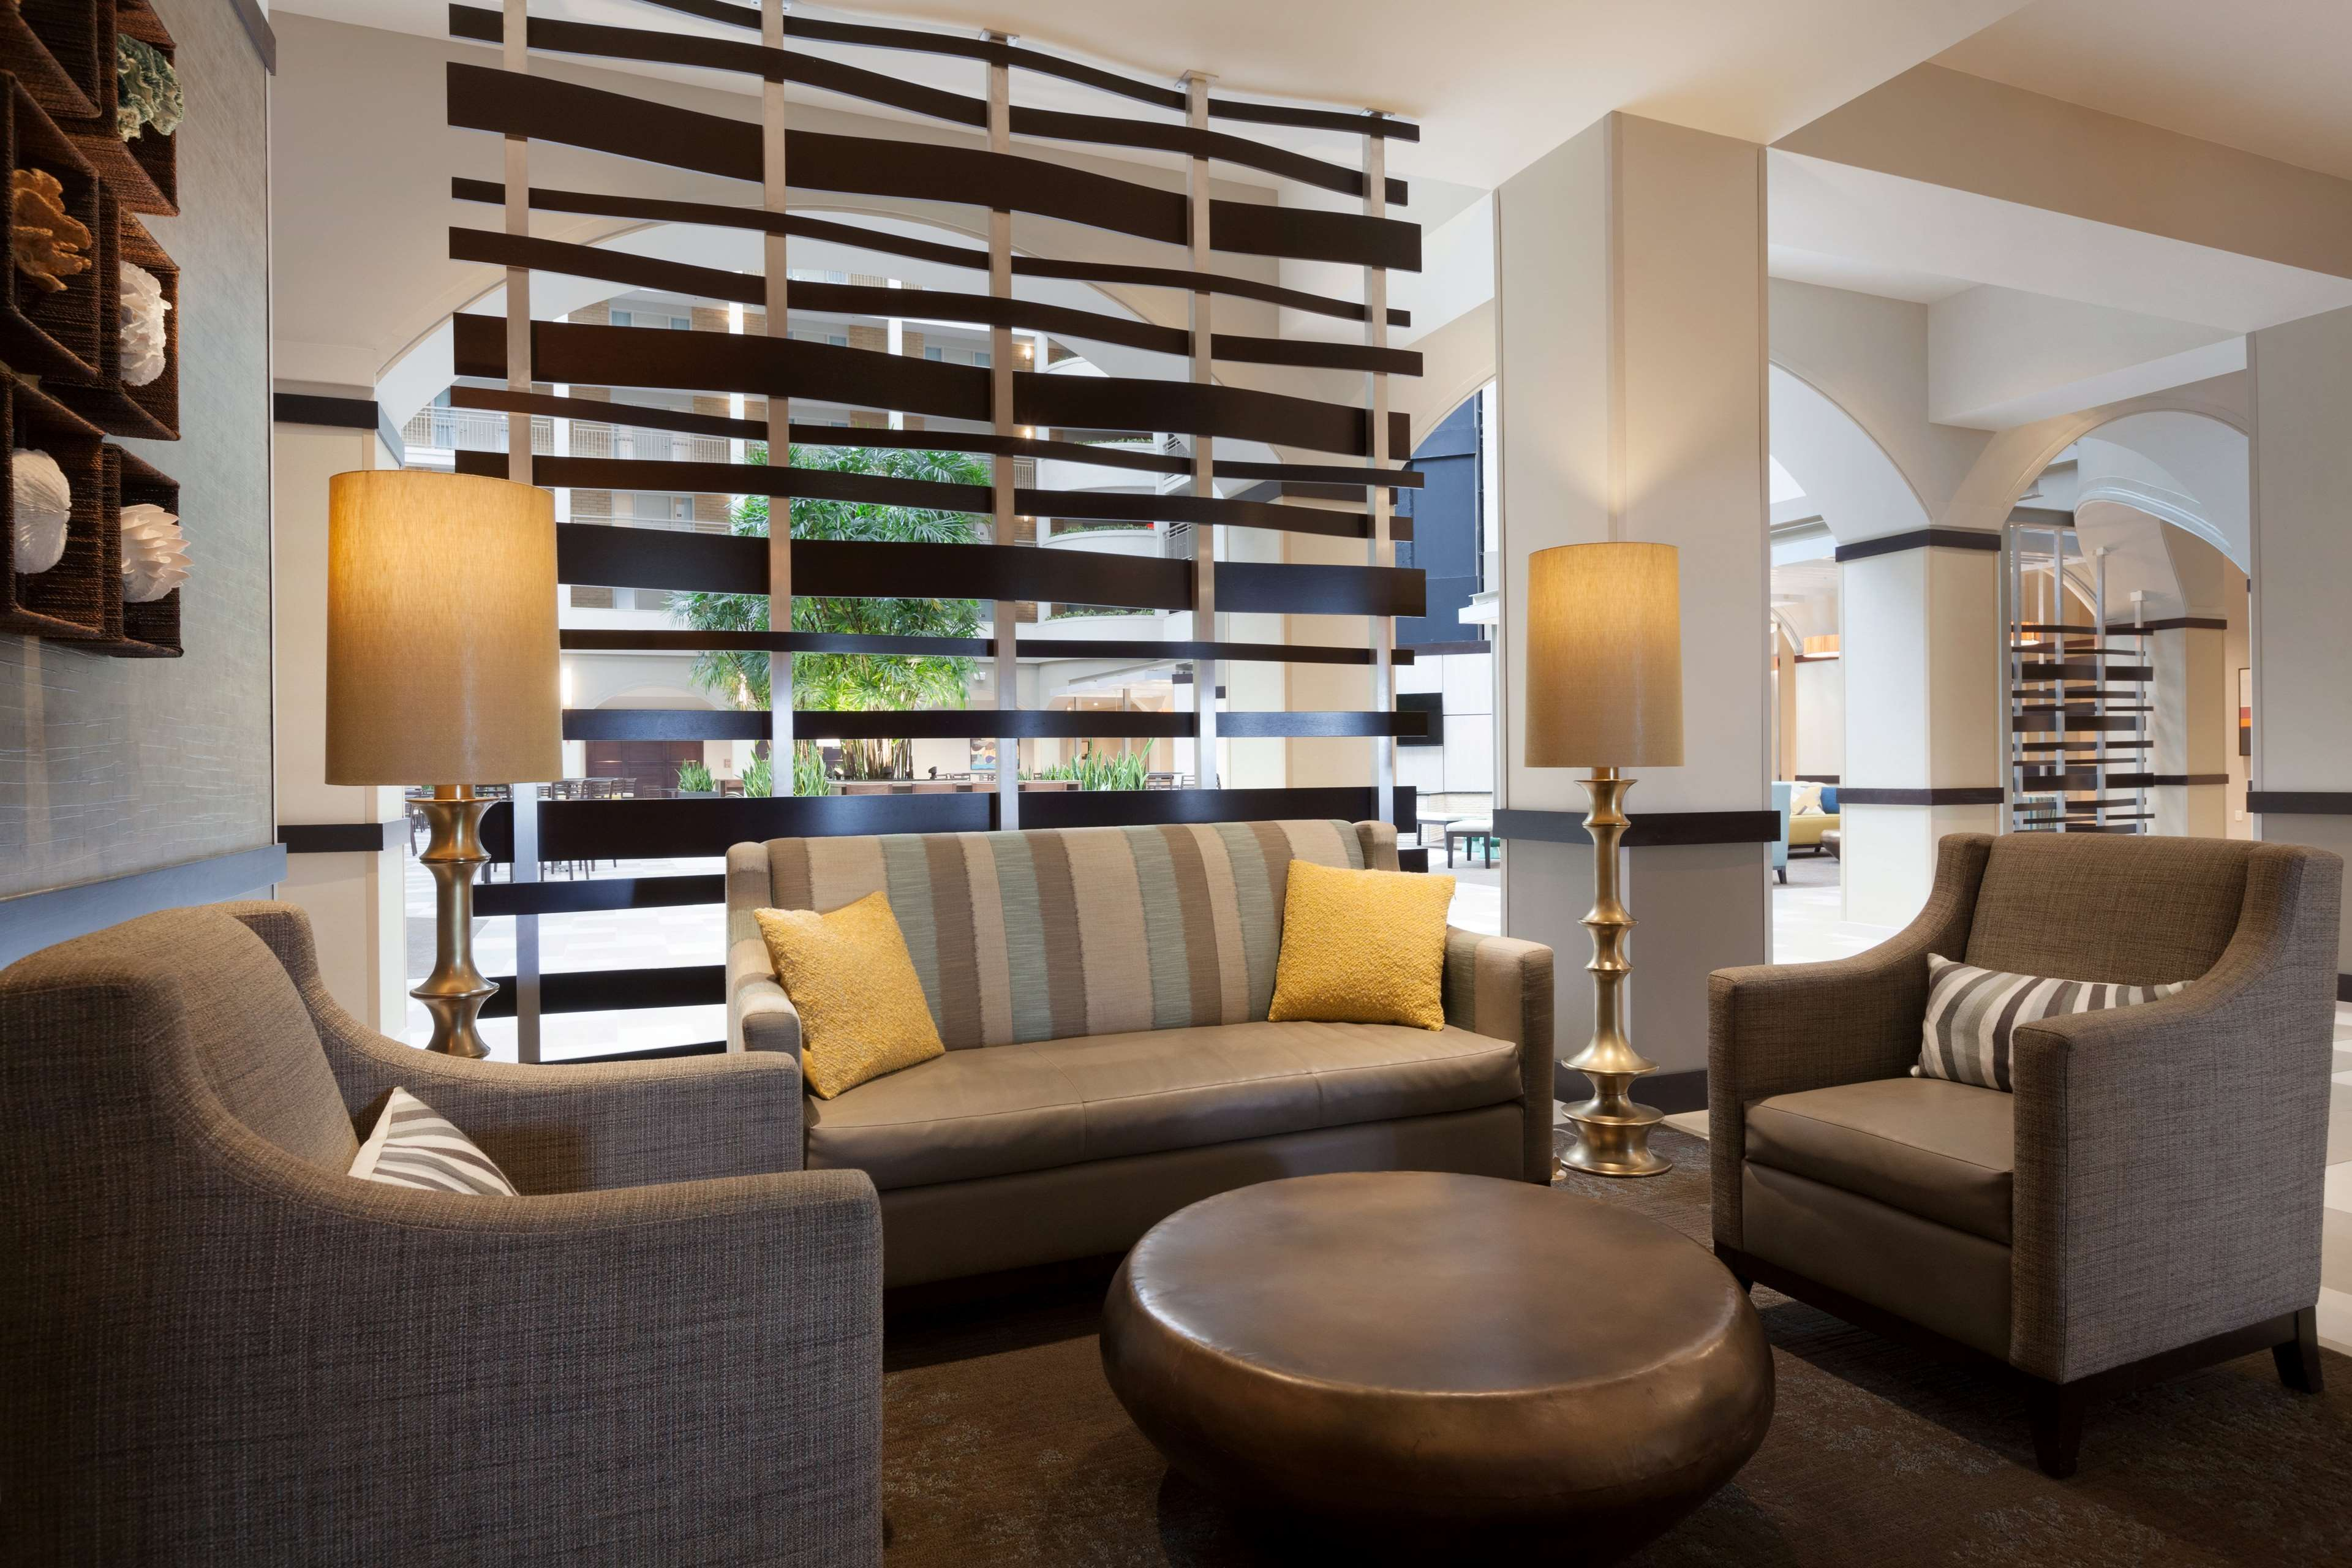 Embassy Suites by Hilton Jacksonville Baymeadows image 6